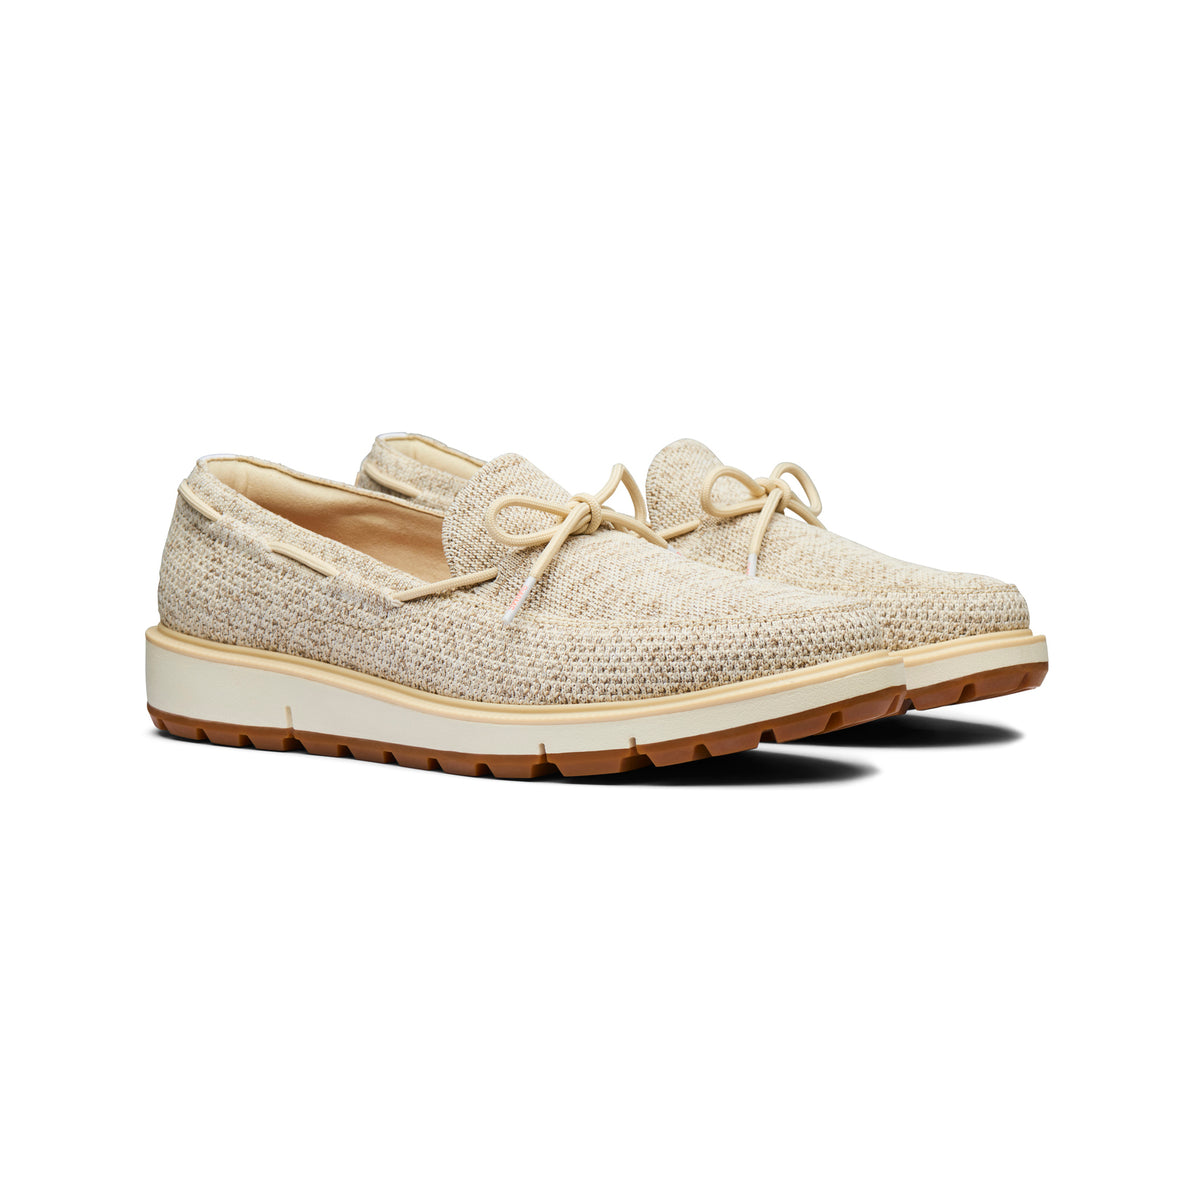 Motion Knit Camp Moccasin - background::white,variant::Chino Green/Limelight/Gum